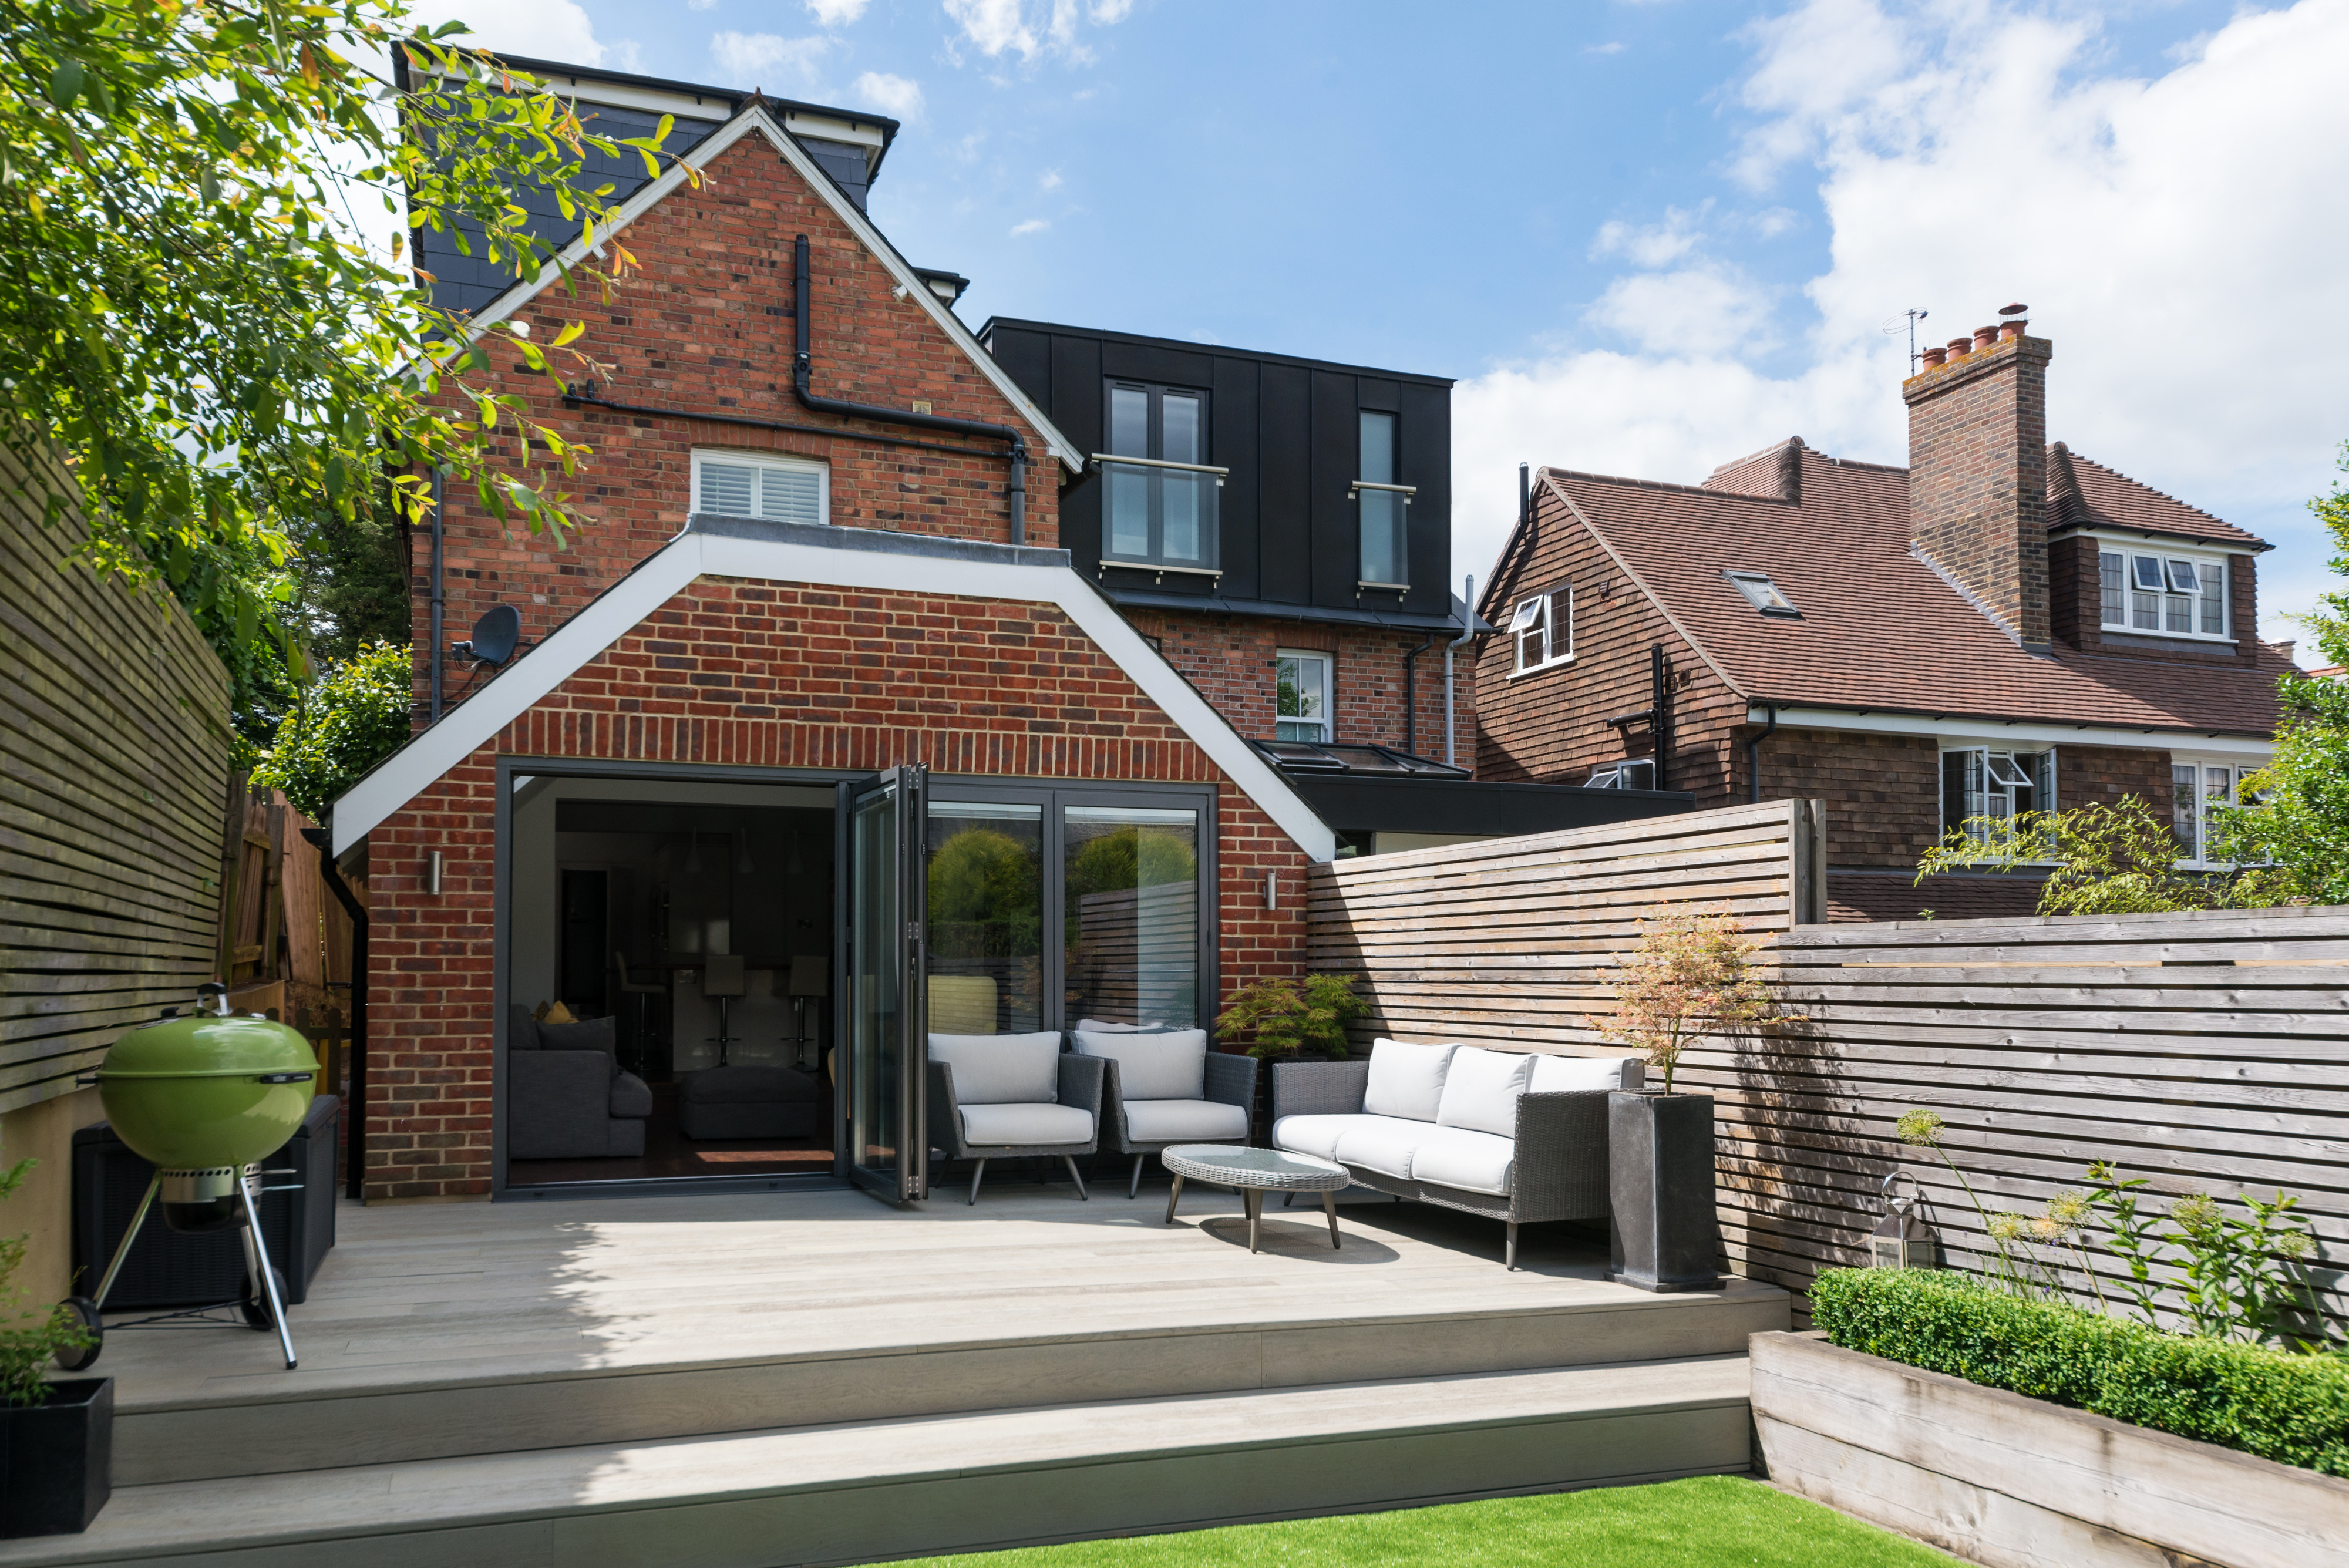 Reigate architectural photographer